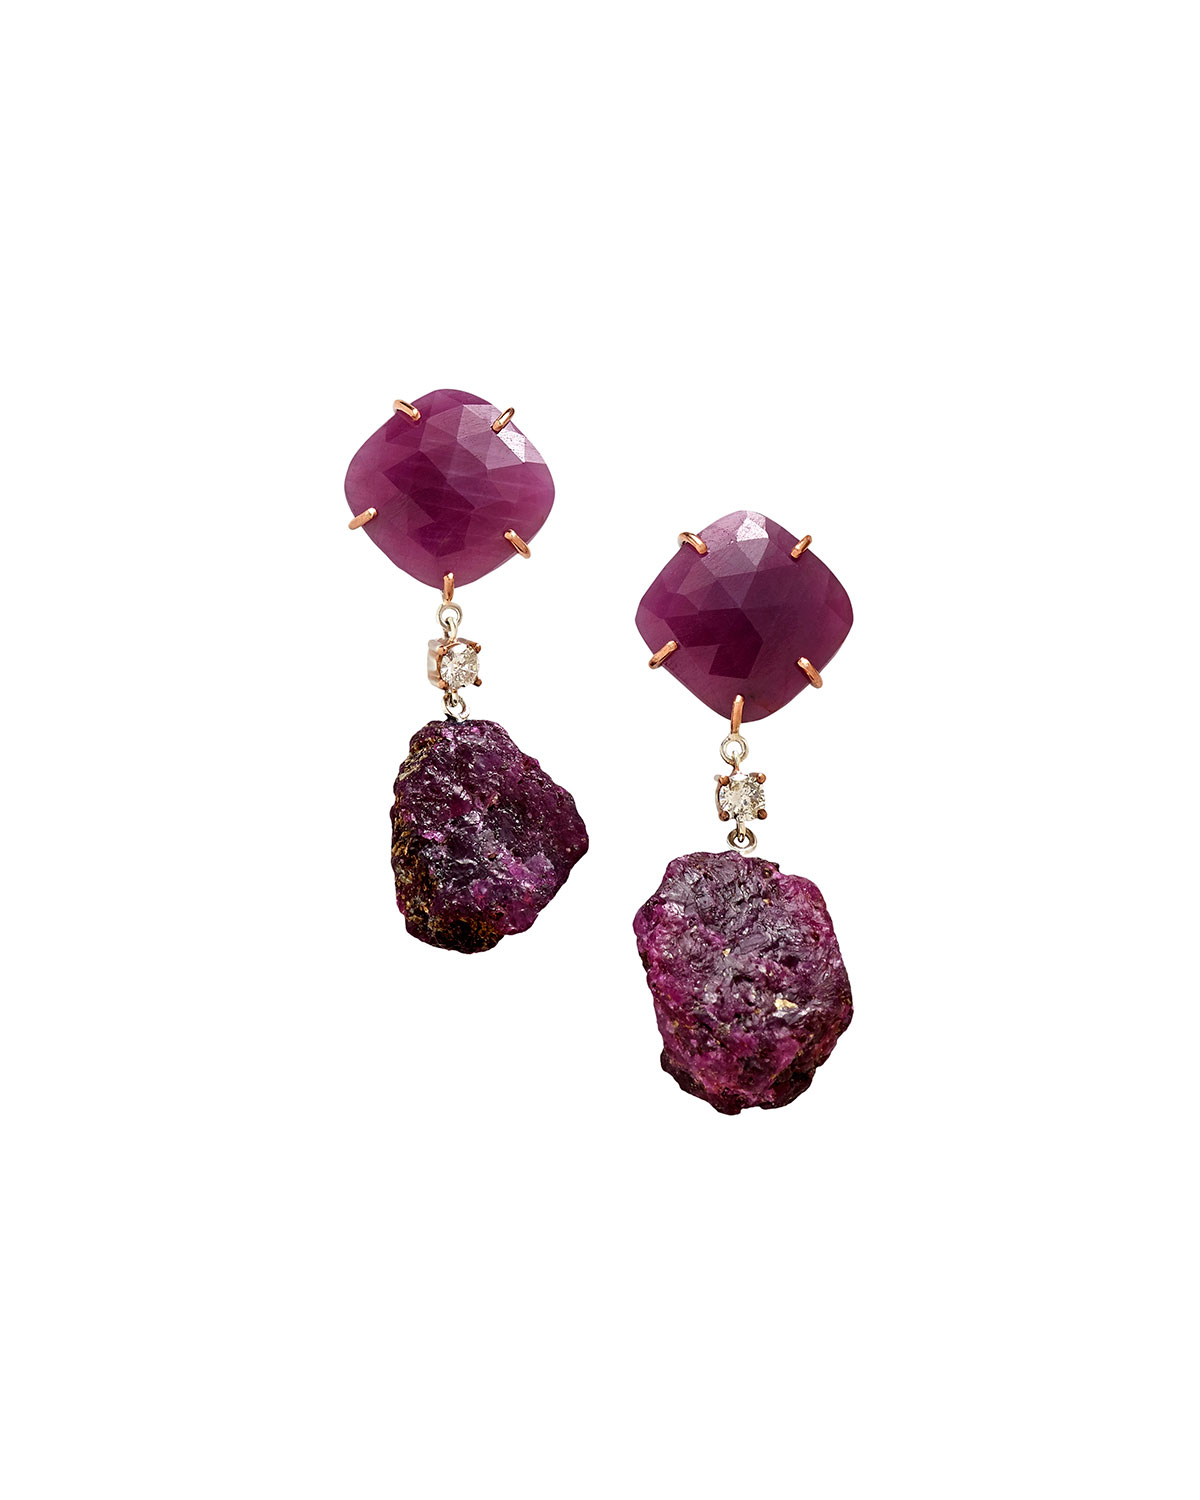 Jan Leslie 18K BESPOKE 2-TIER TRIBAL LUXURY EARRING WITH FACETED RUBY, ROUGH RUBY, AND DIAMOND